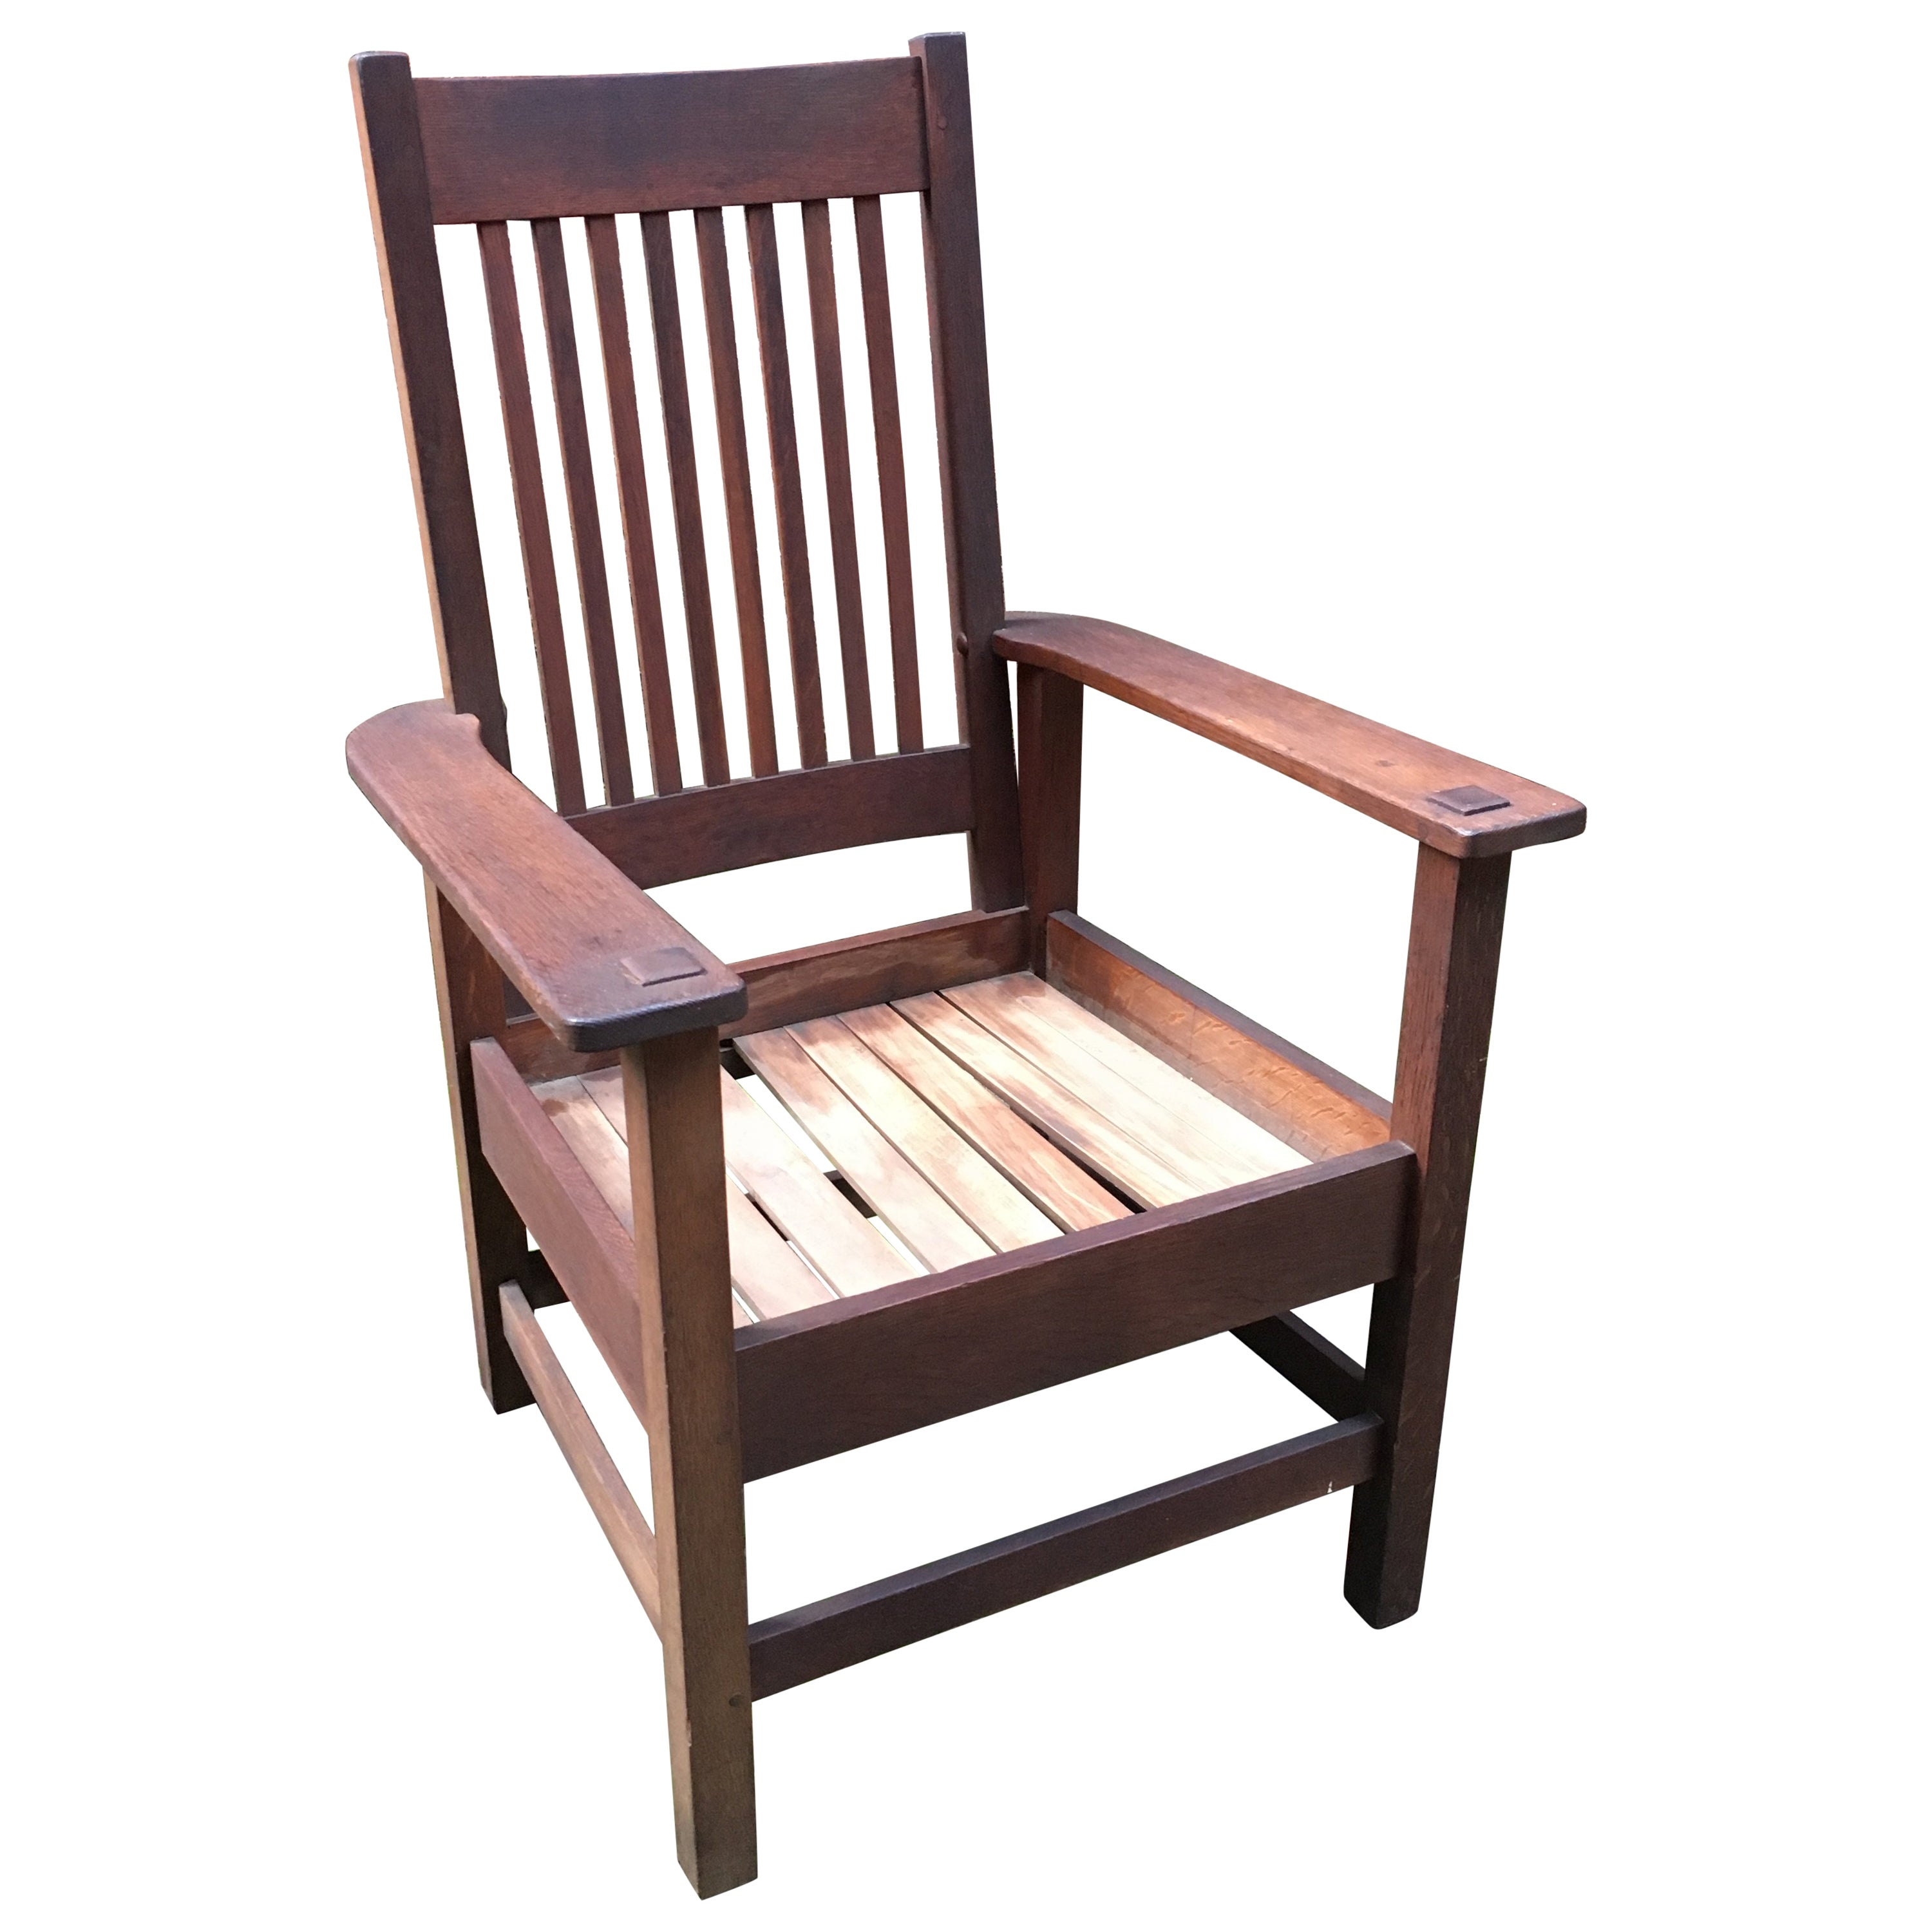 Stickley Brothers Quaint Furniture Arts & Crafts Spindle Back Armchair